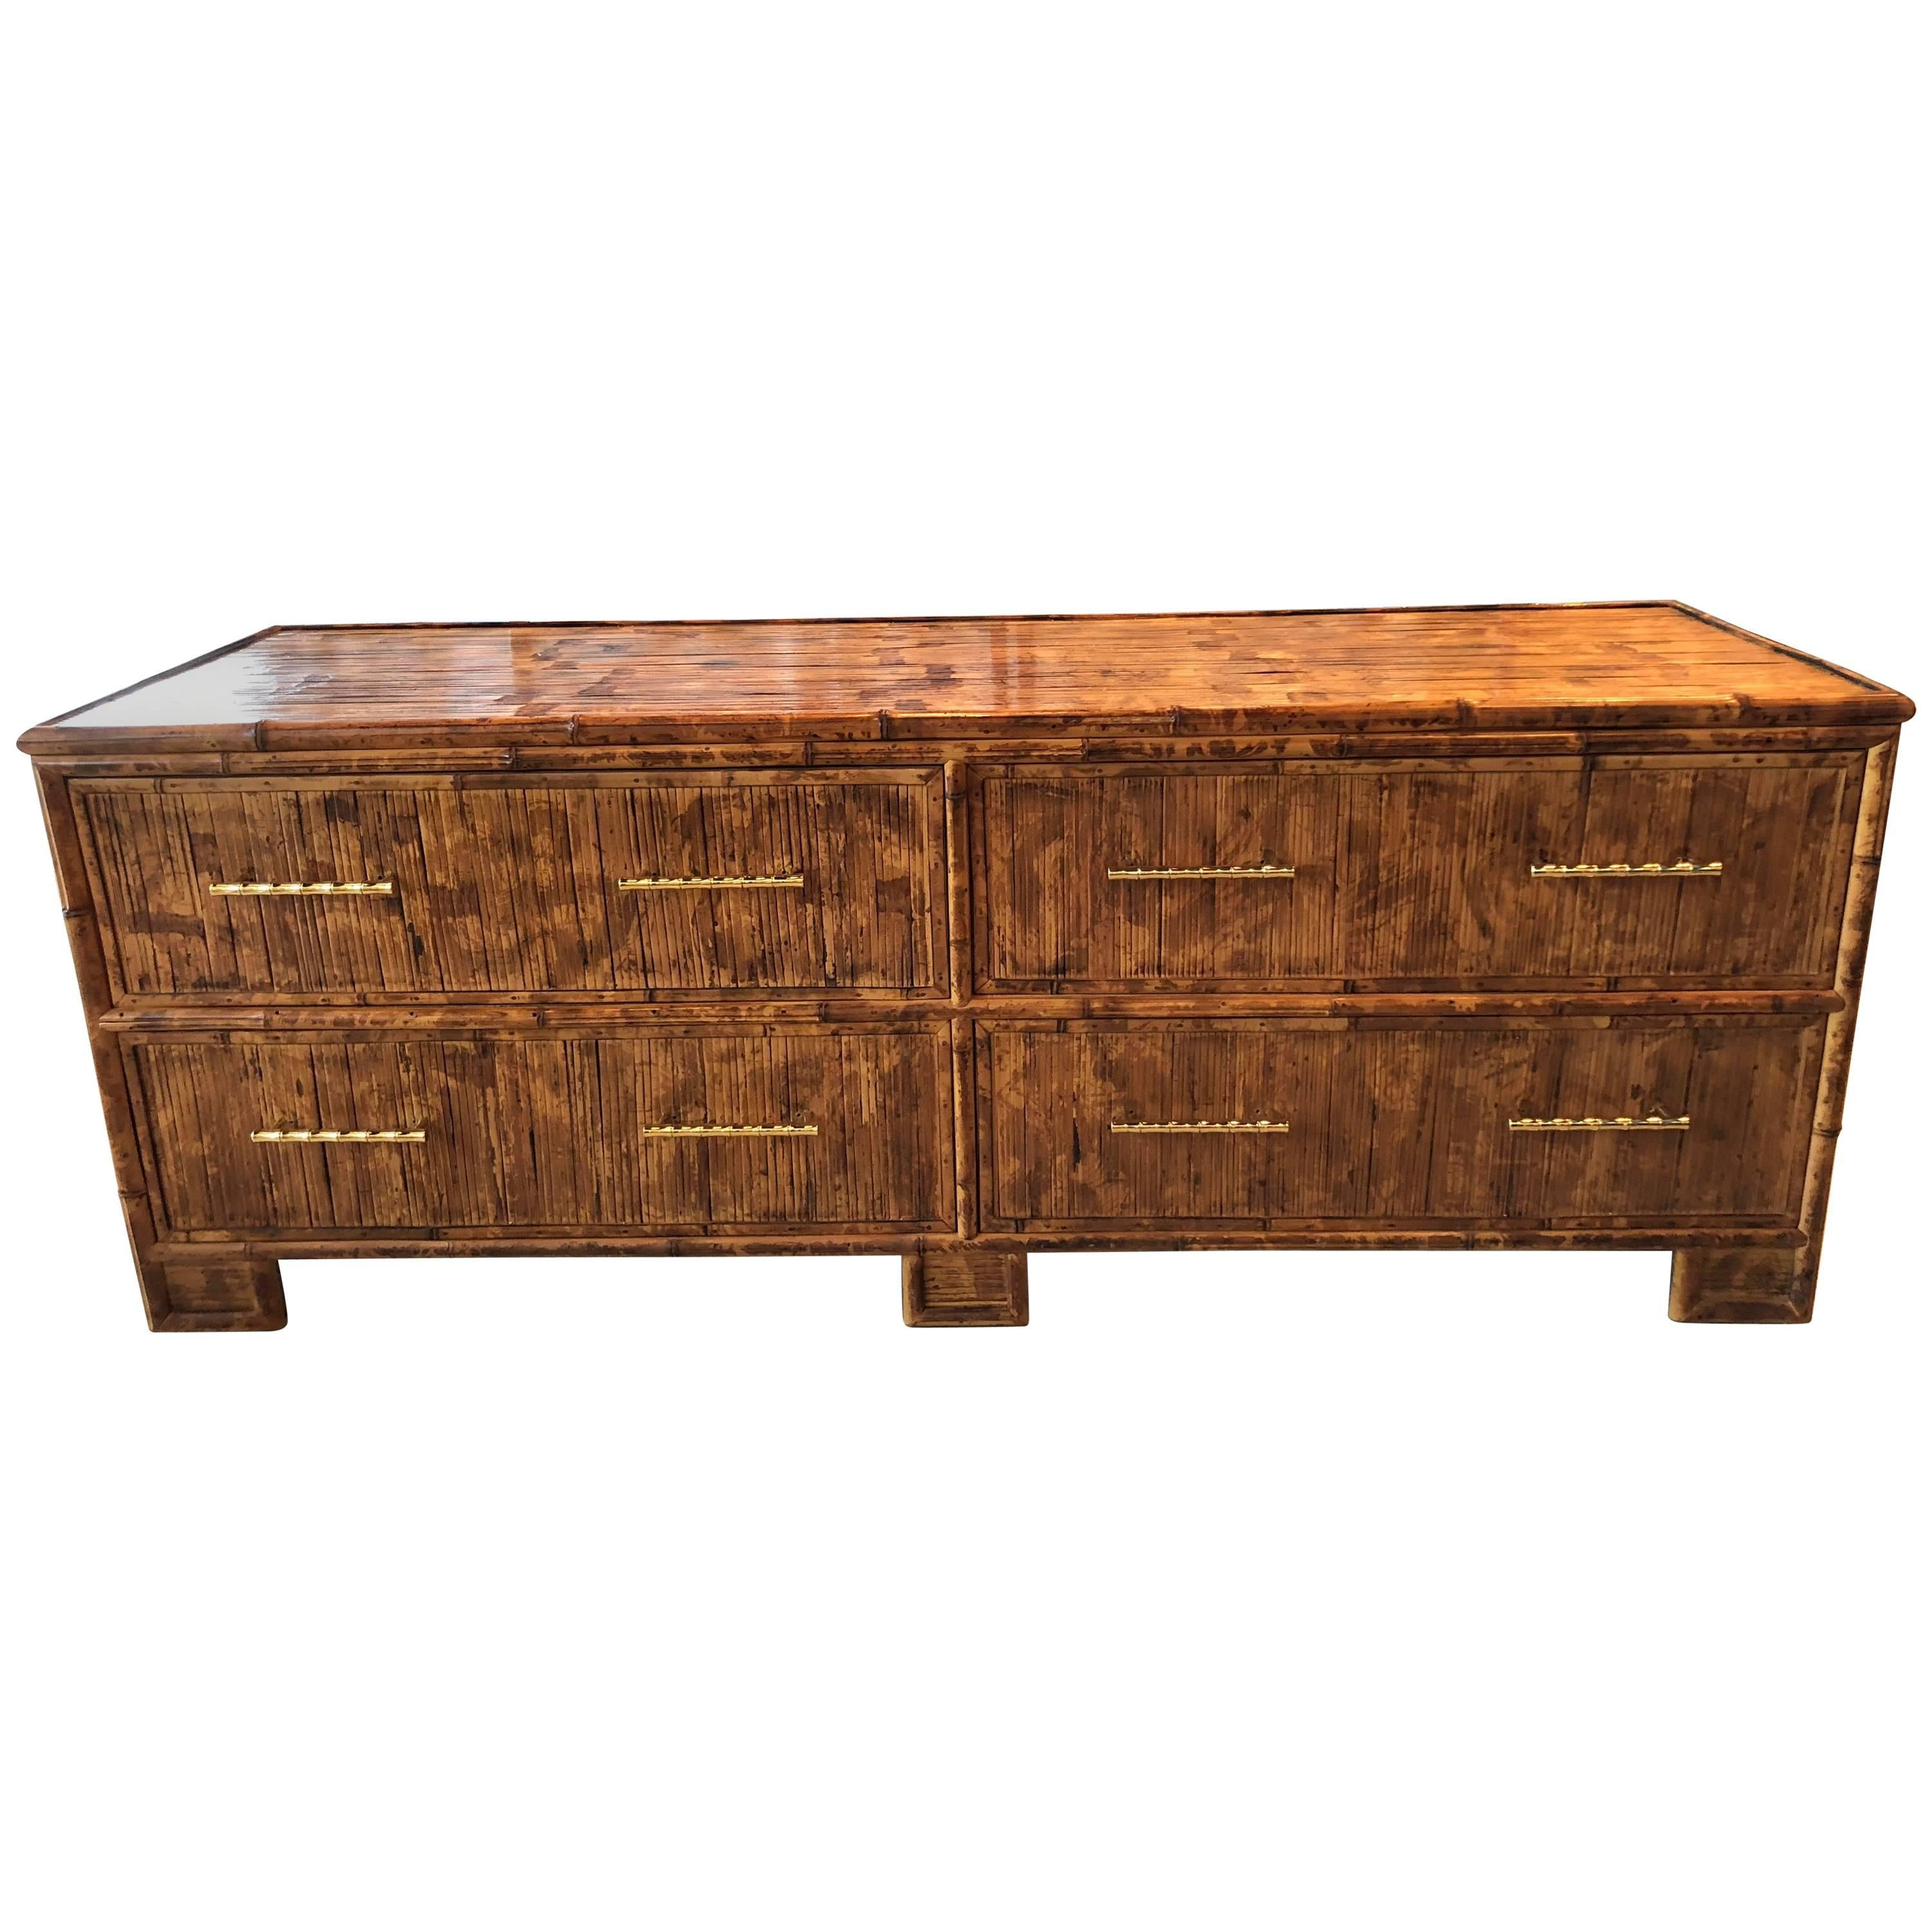 Split Bamboo Reed Credenza Sideboard TV Media Console